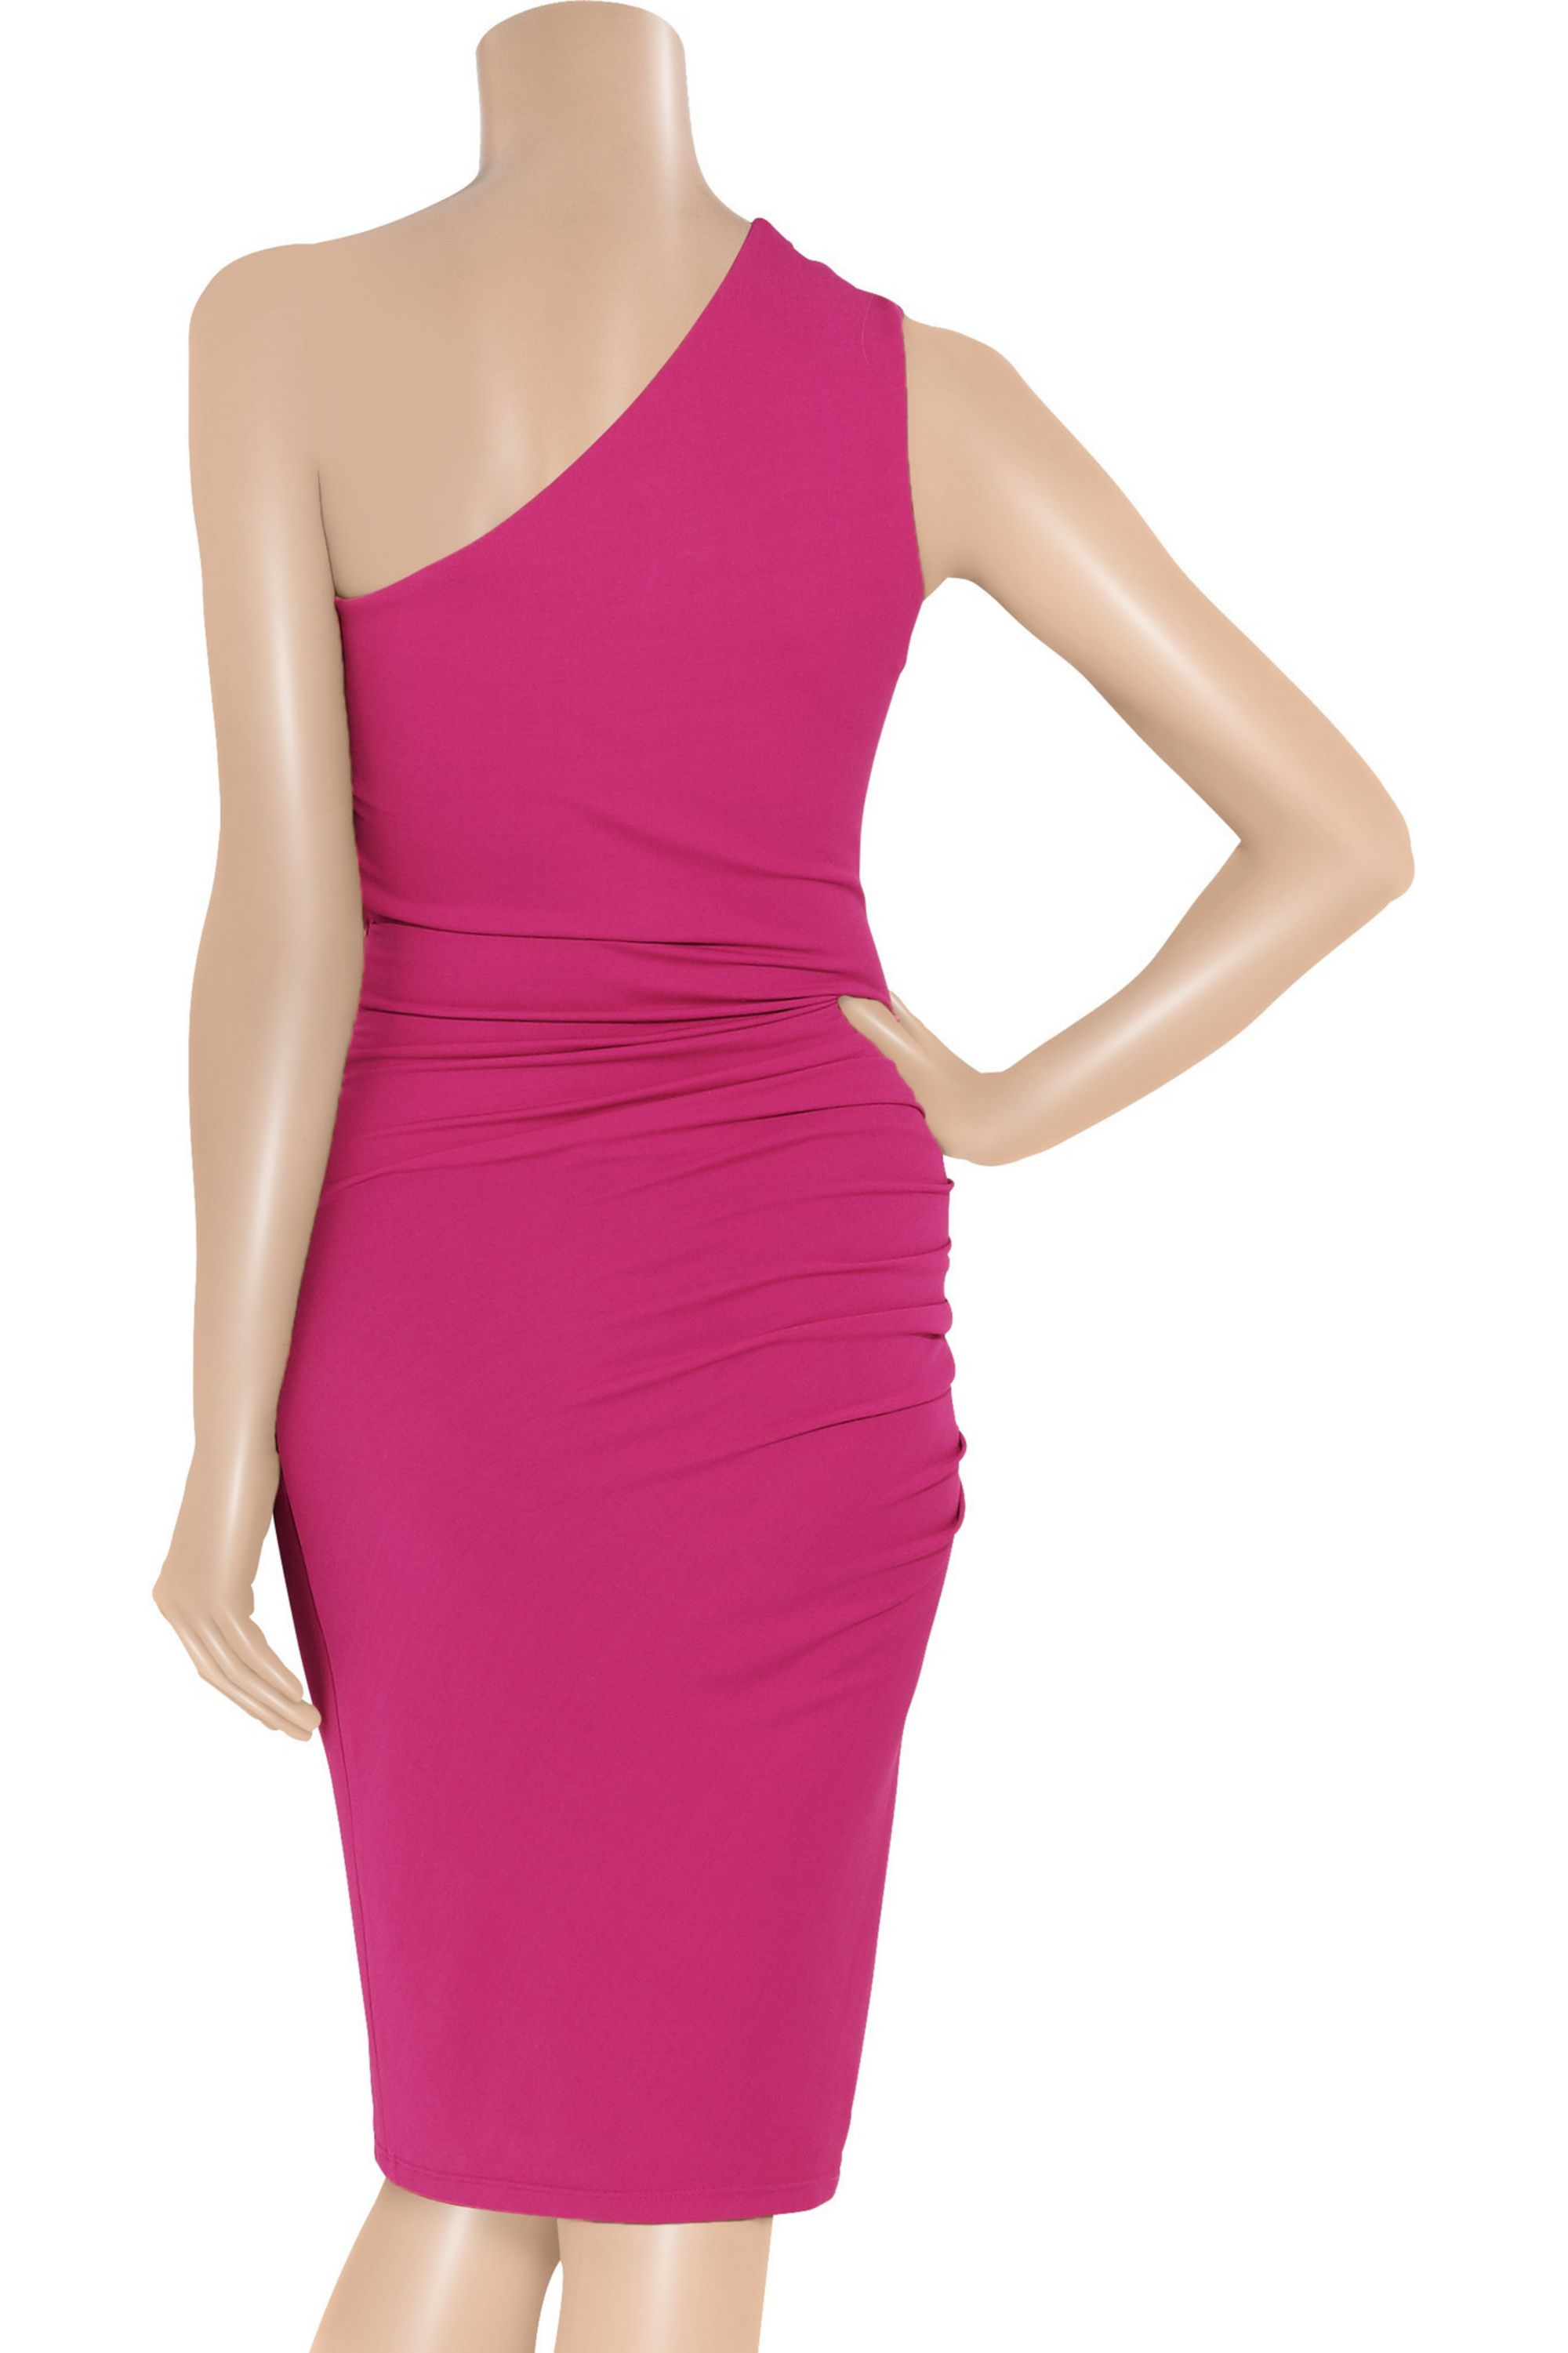 Michael Kors Collection One-shoulder stretch-jersey dress